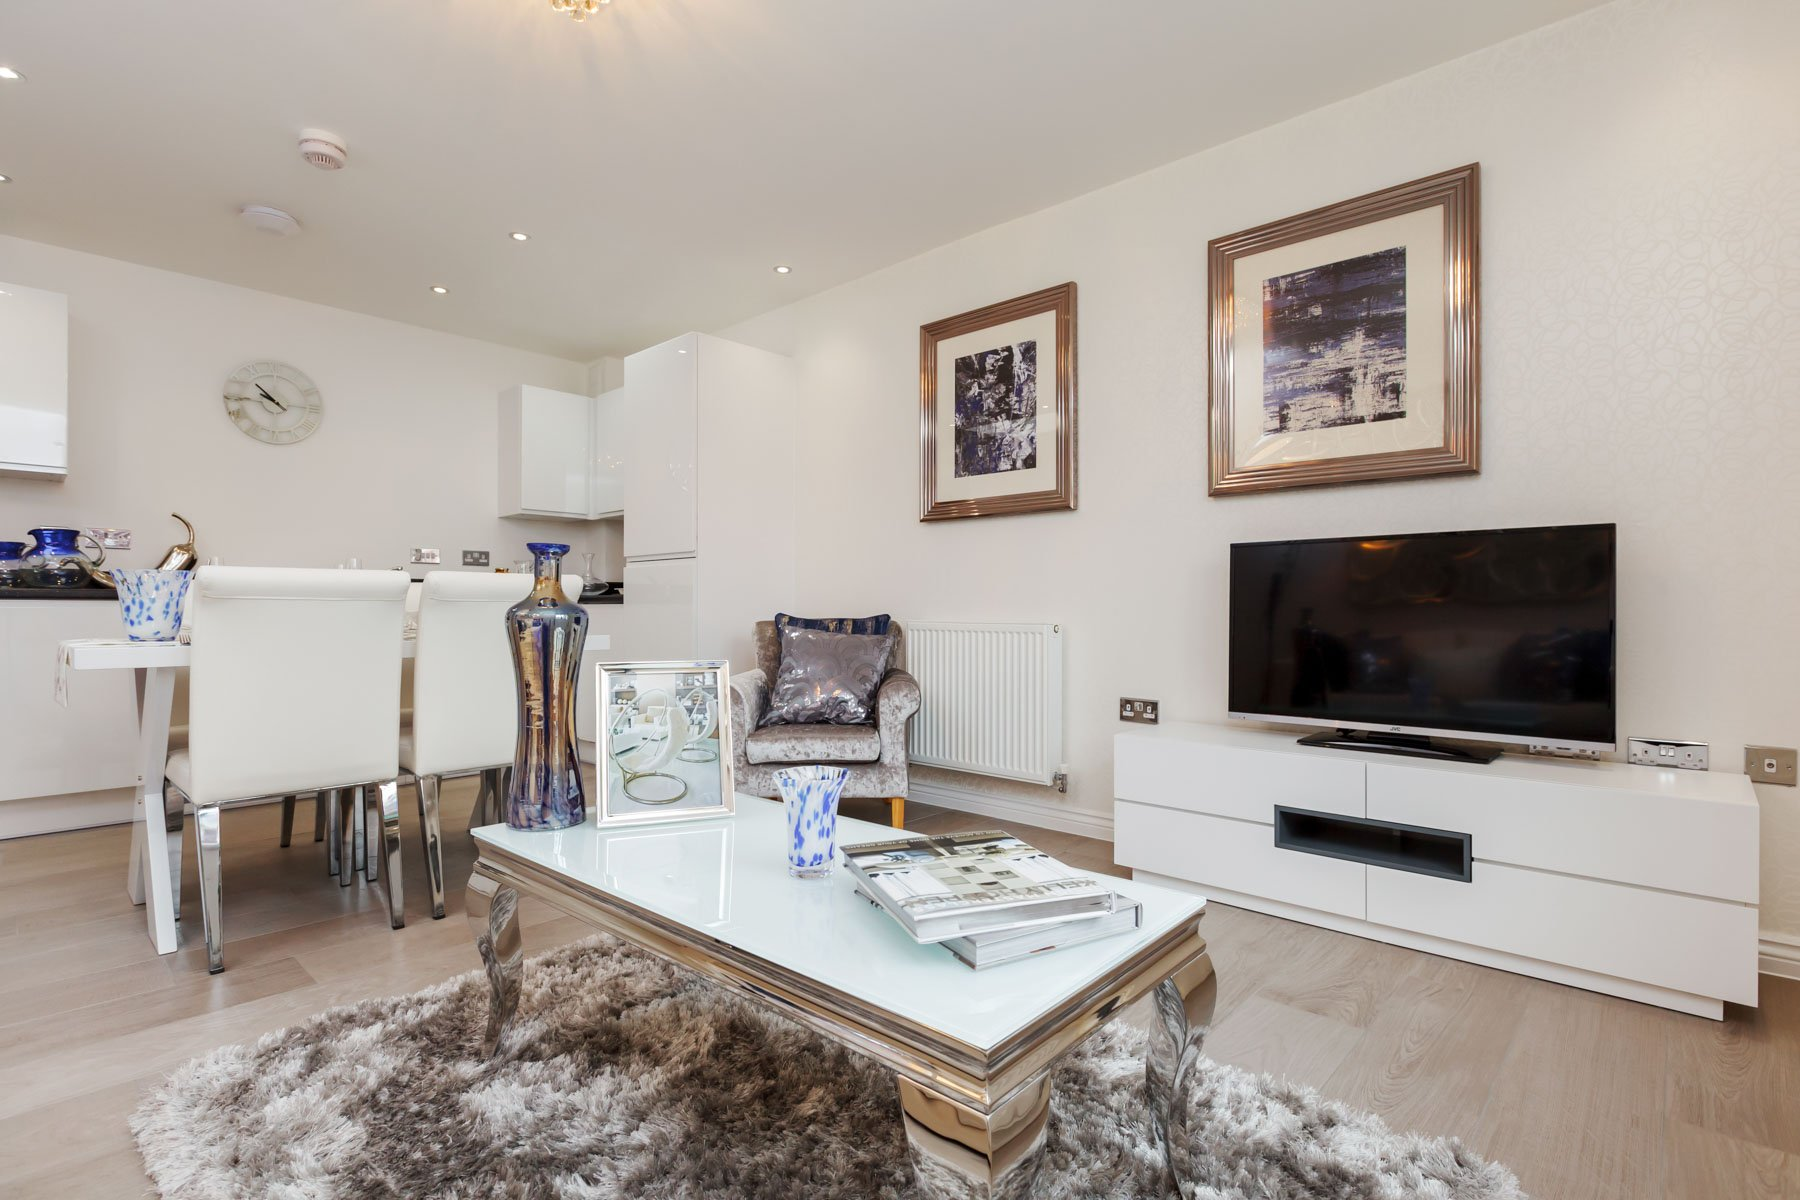 Typical Taylor Wimpey home - Lounge and dining area